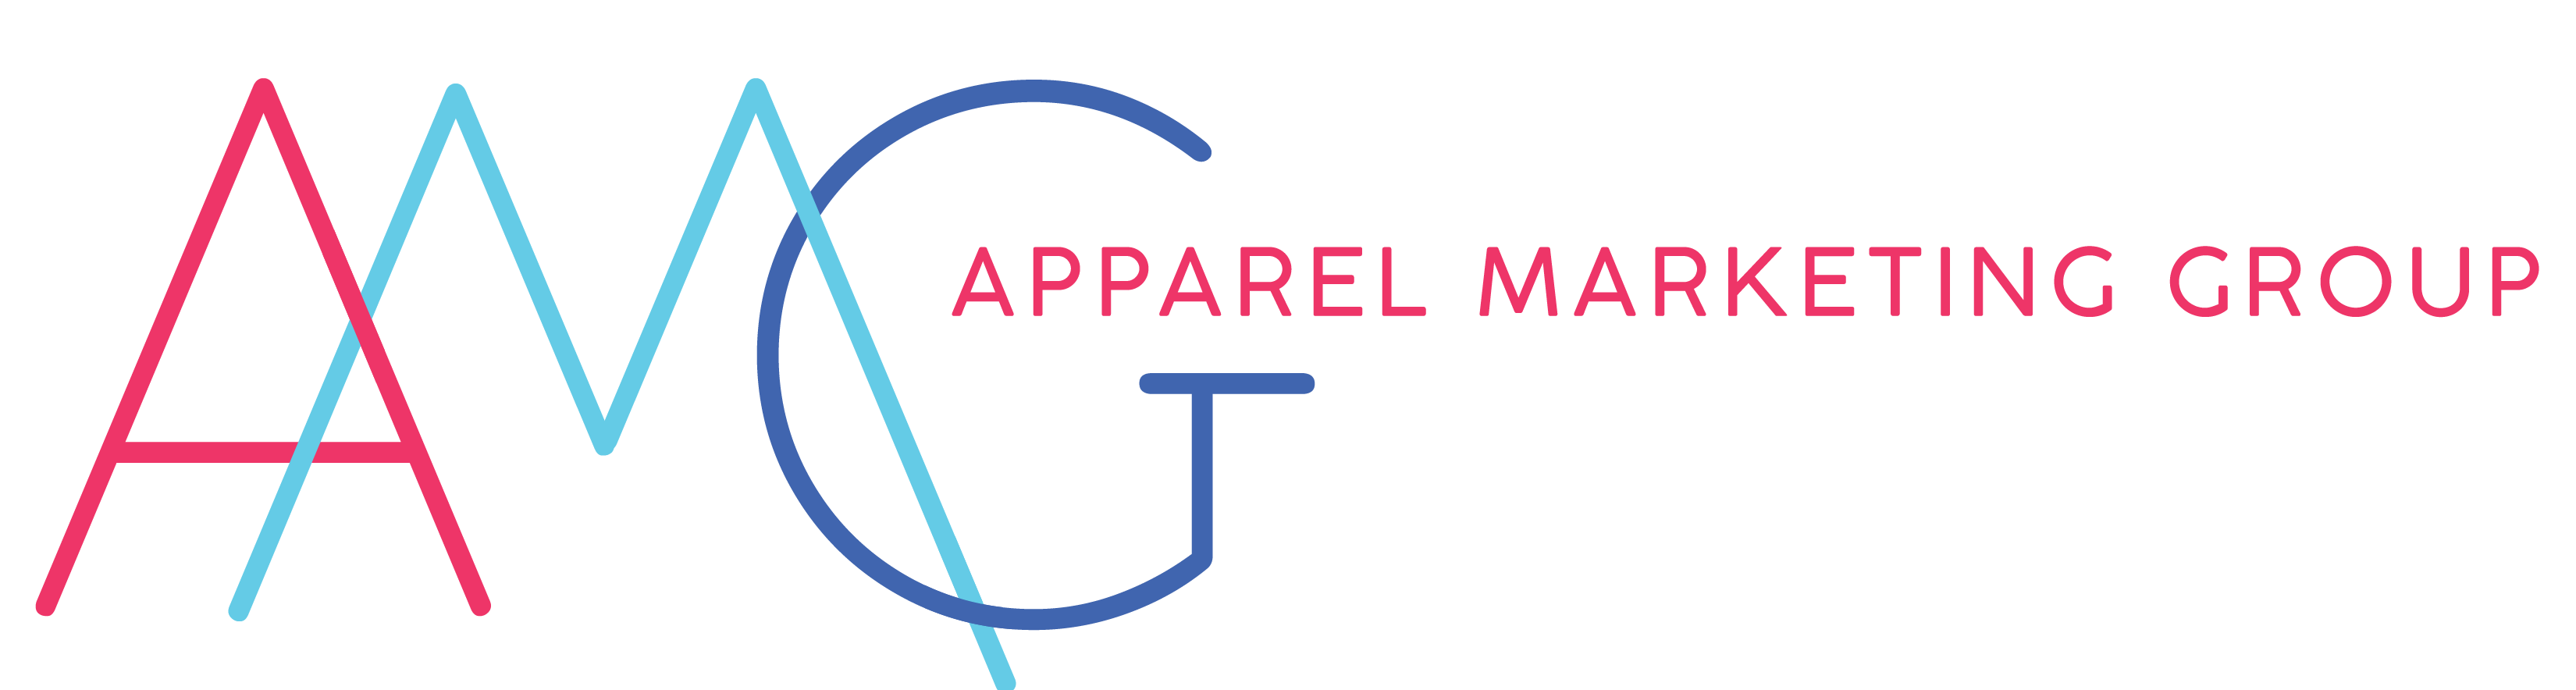 The Apparel Marketing Group